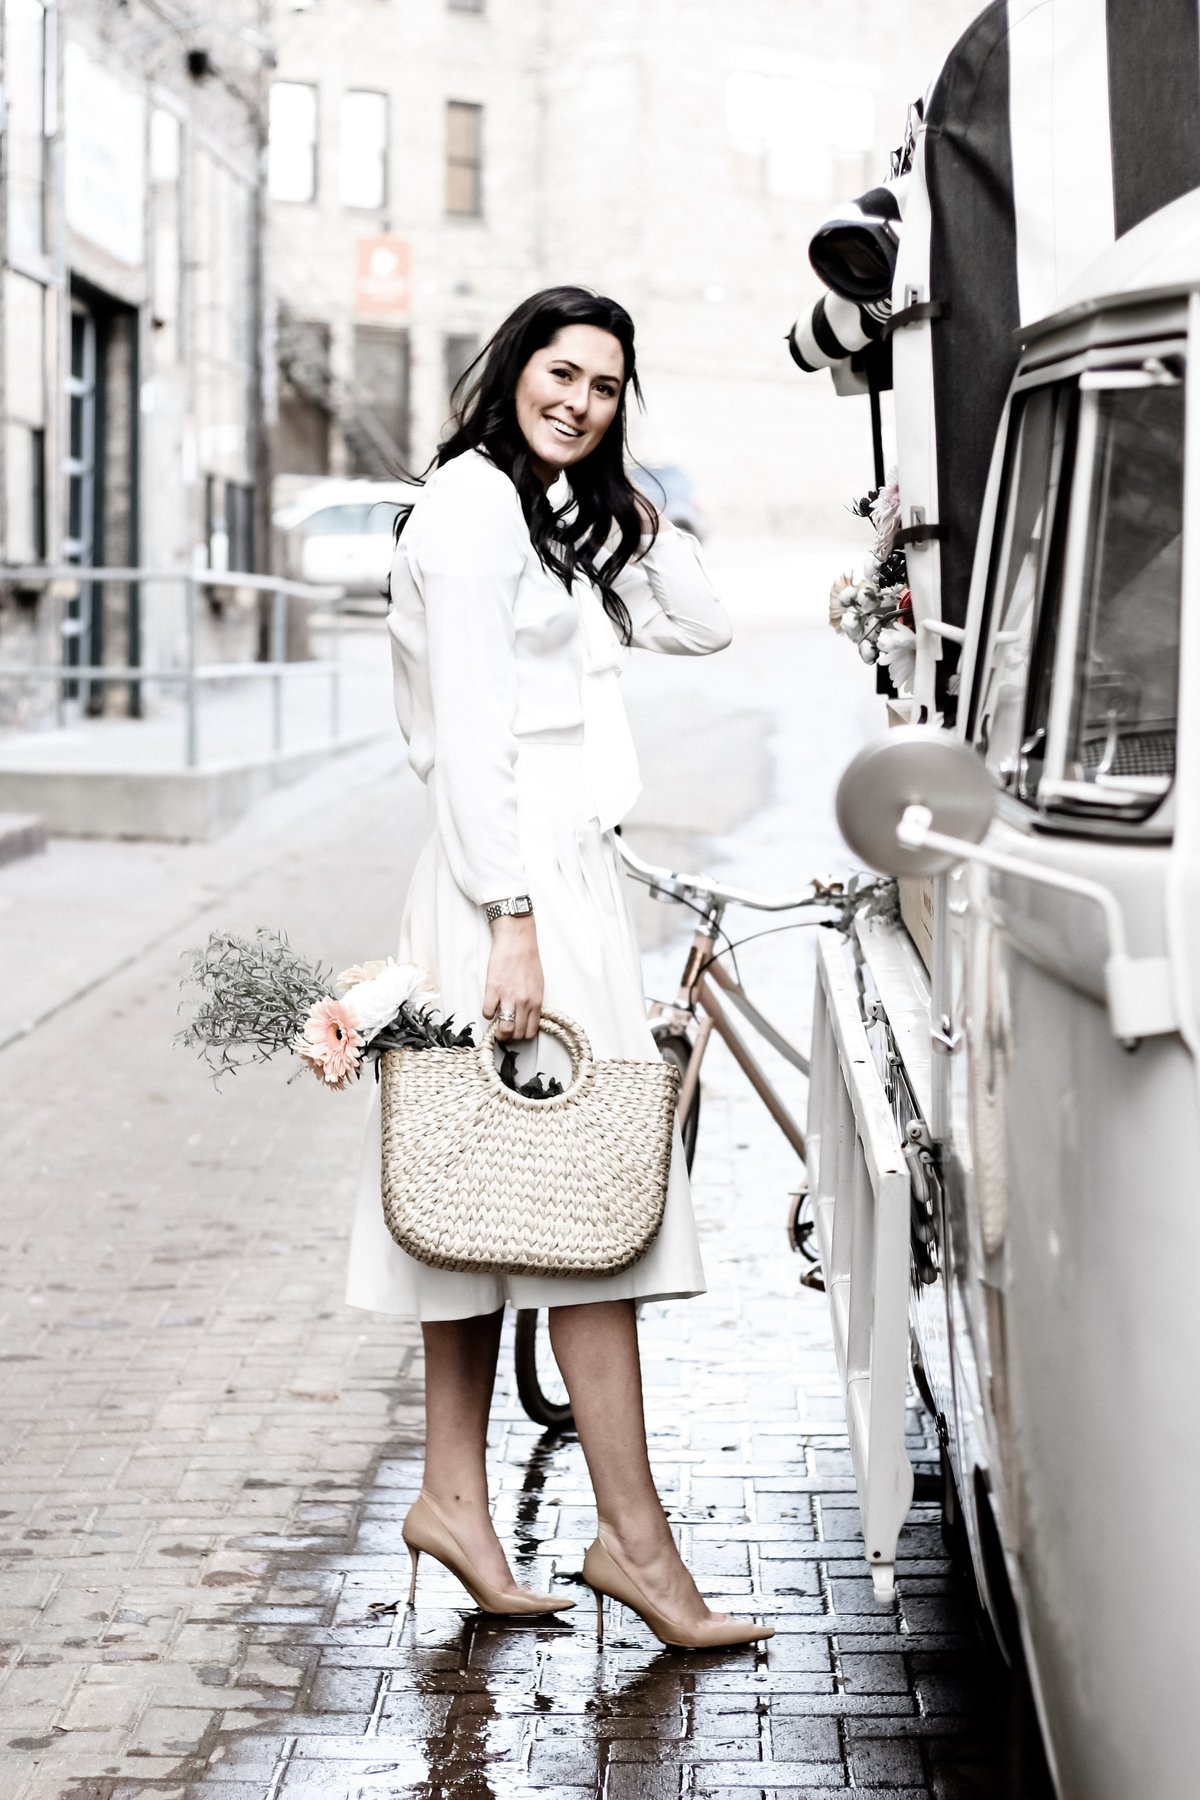 A Paris-esque photo of a woman shopping for flowers with a market bag and bicycle